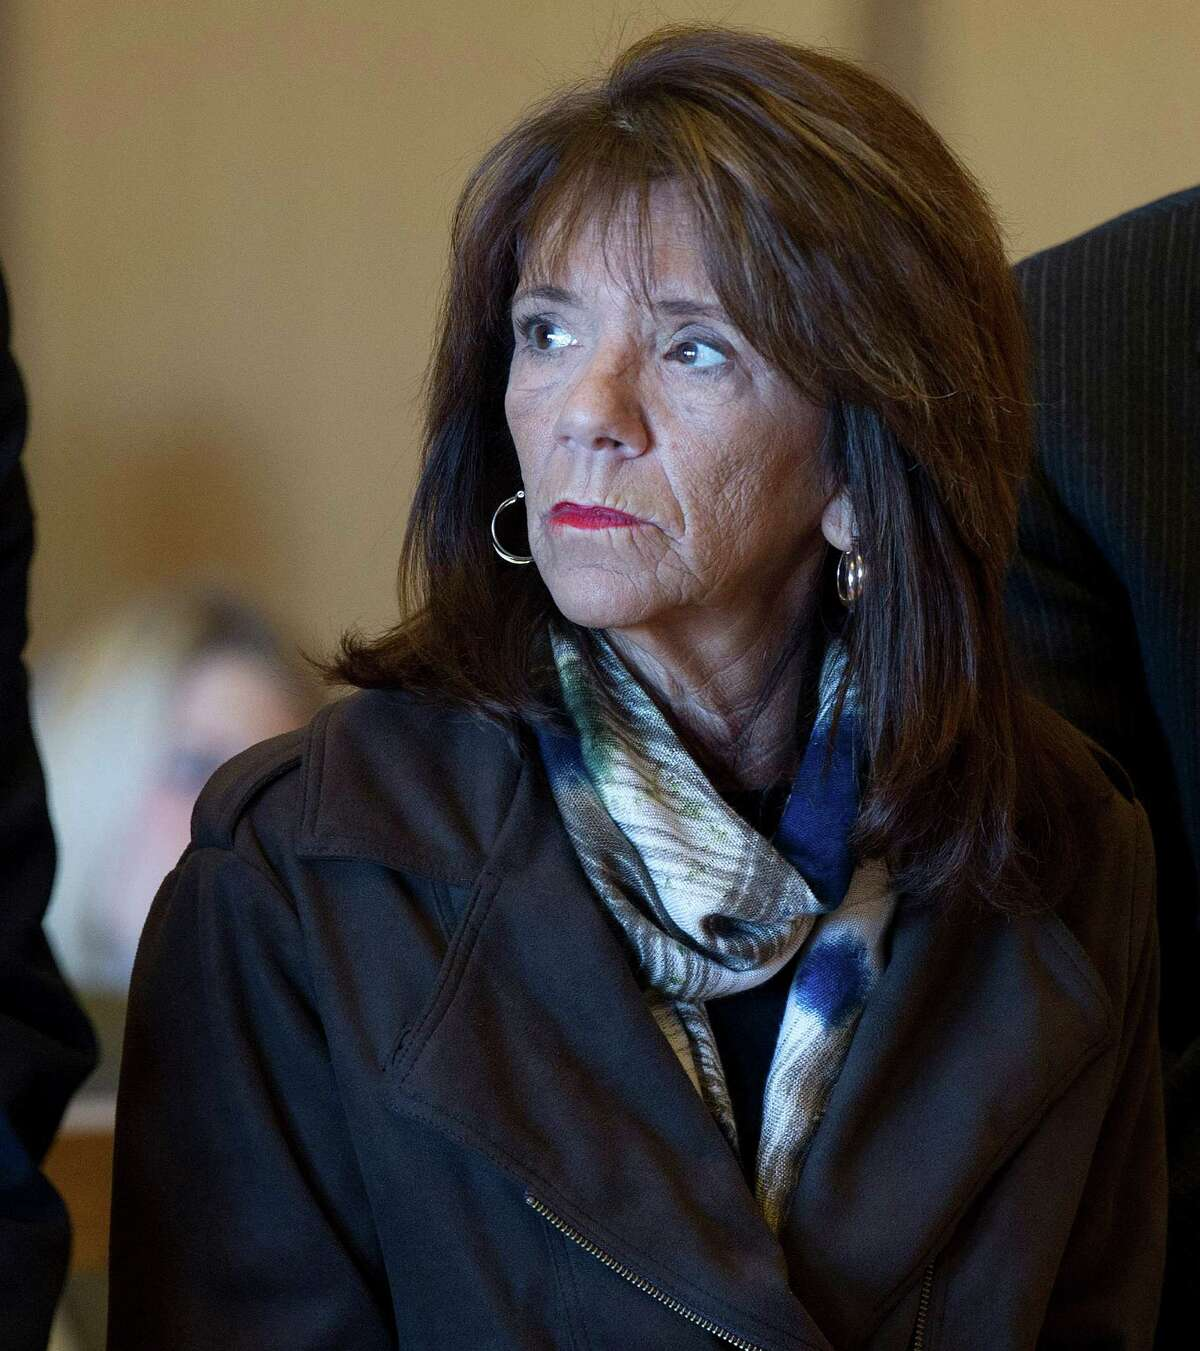 Former Stamford High School Principal Donna Valentine is appealing the Board of Education's decision to fire her in connection with sexual misconduct at the school in 2014.